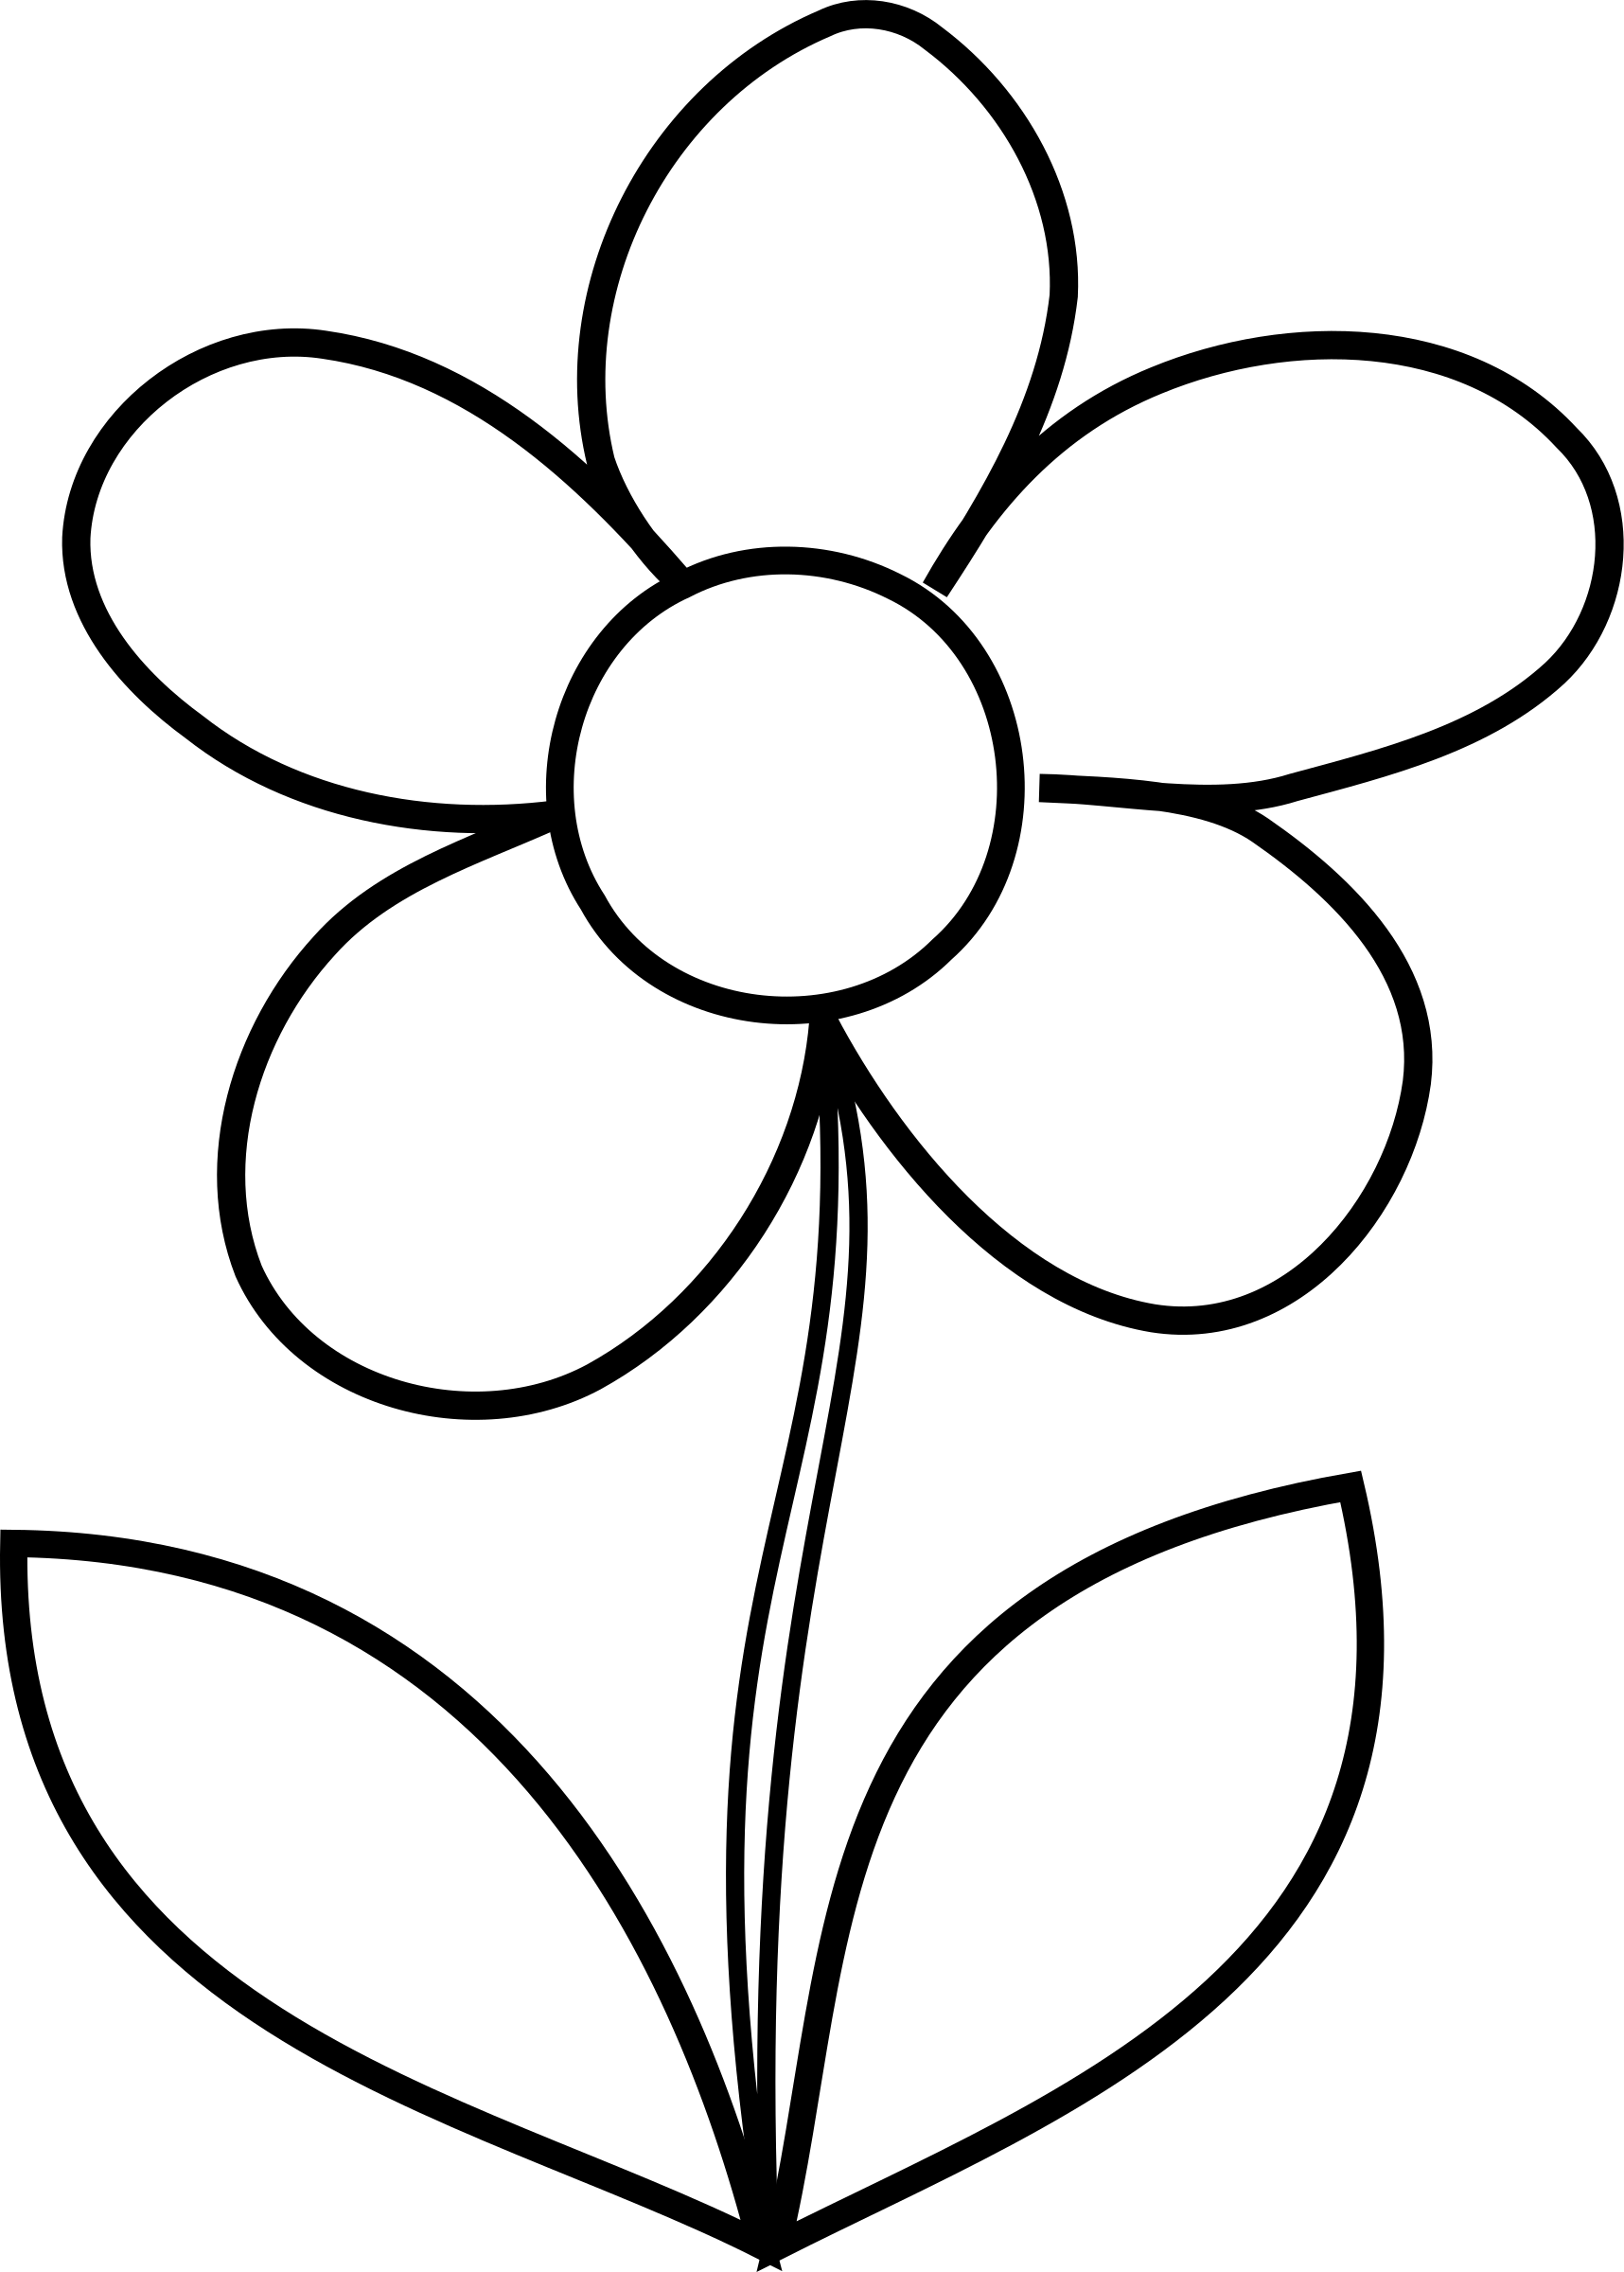 flowers outlines for colouring clipart  simple flower bw flowers for outlines colouring